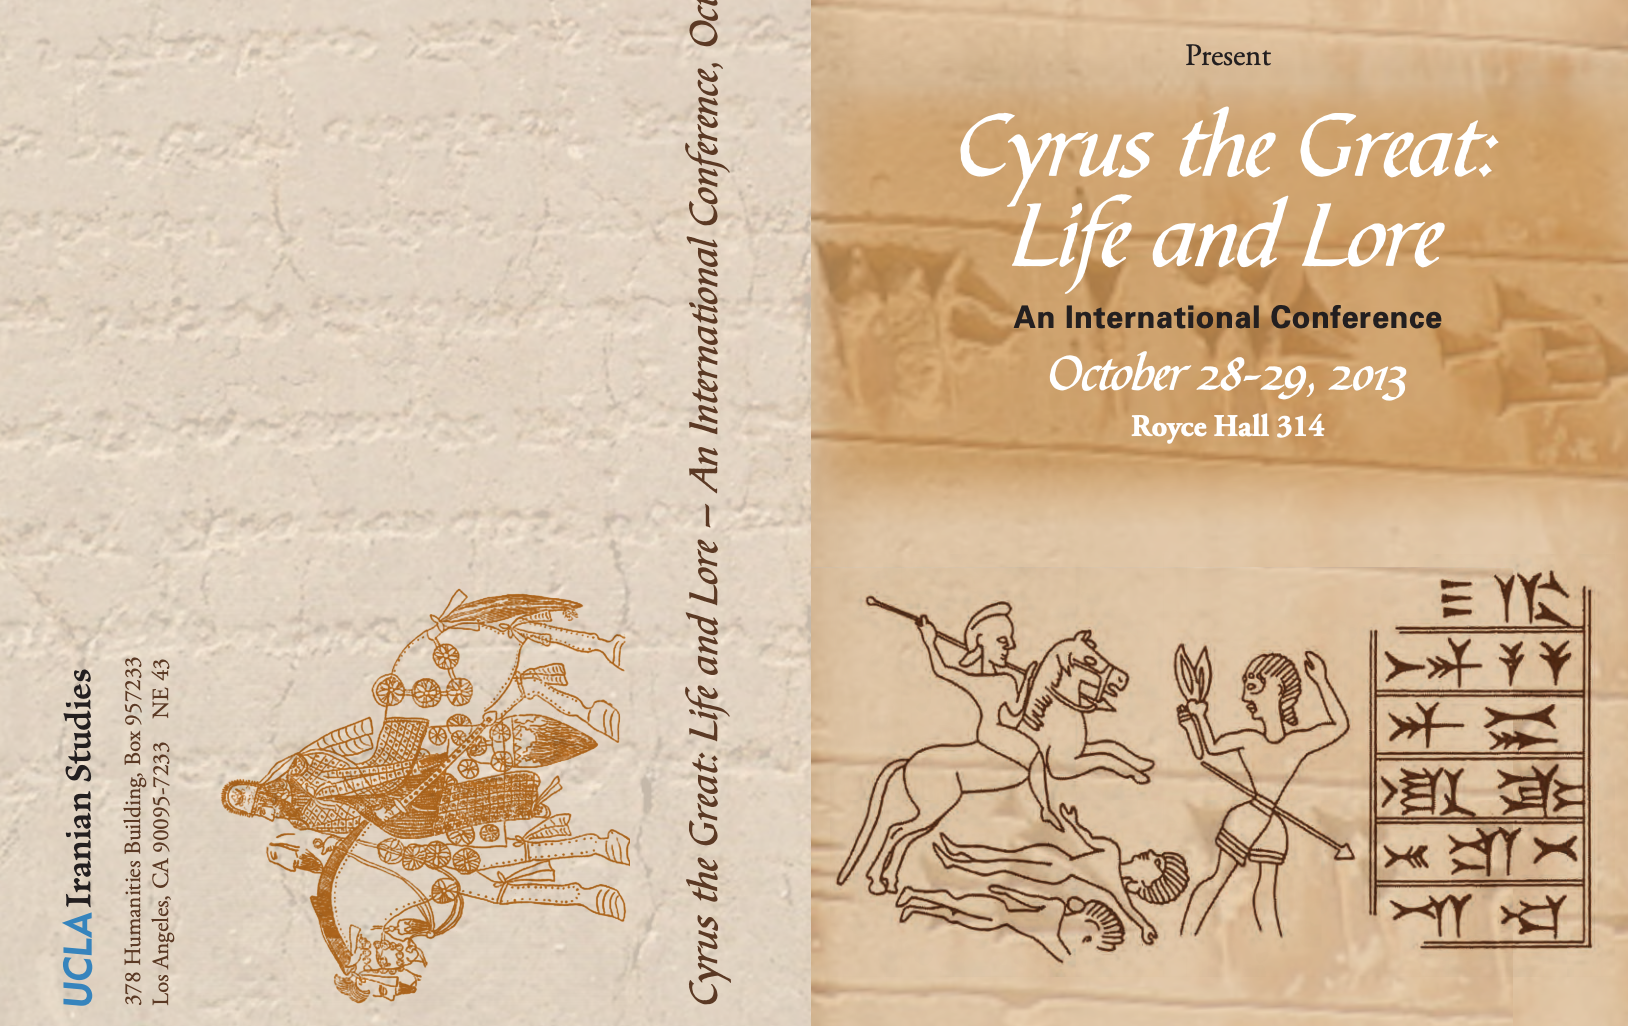 'Cyrus the Great: Life and Lore' conference prospectus (detail), 2013, UCLA, Los Angeles, U.S.A.